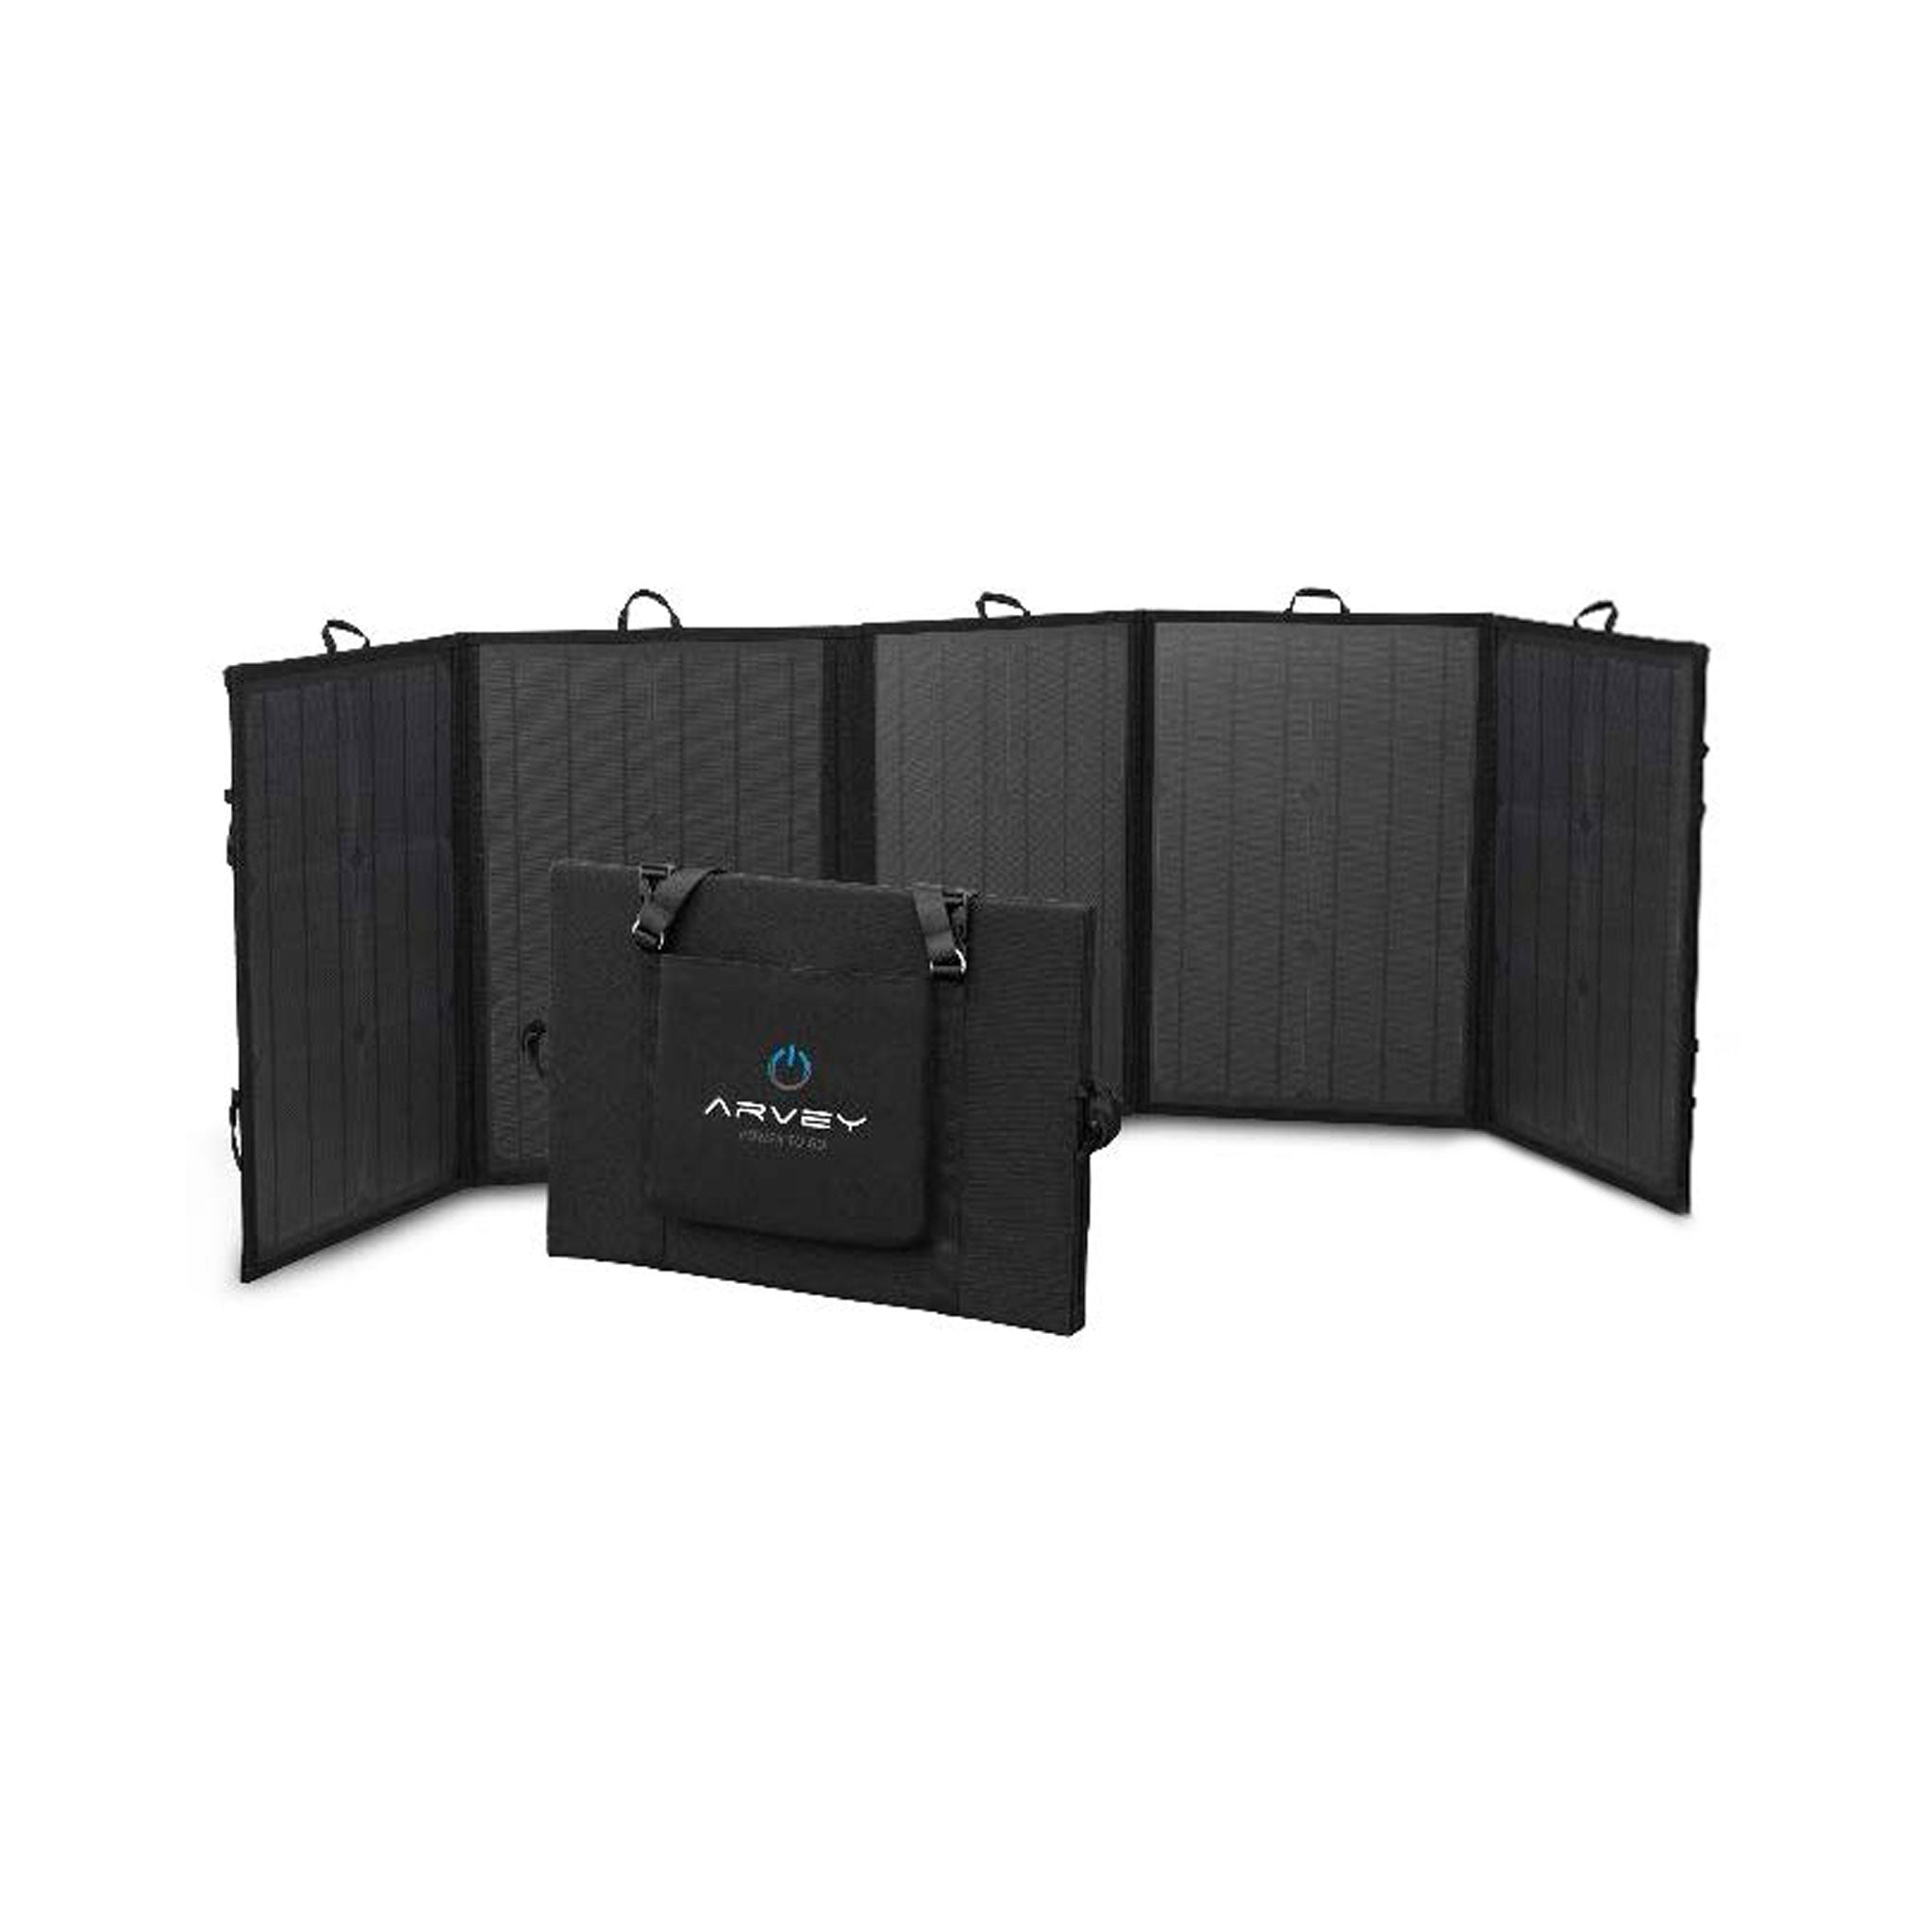 Faltbares Photovoltaik Panel 125W - ARVEY mobile solargenerator and portable power solutions